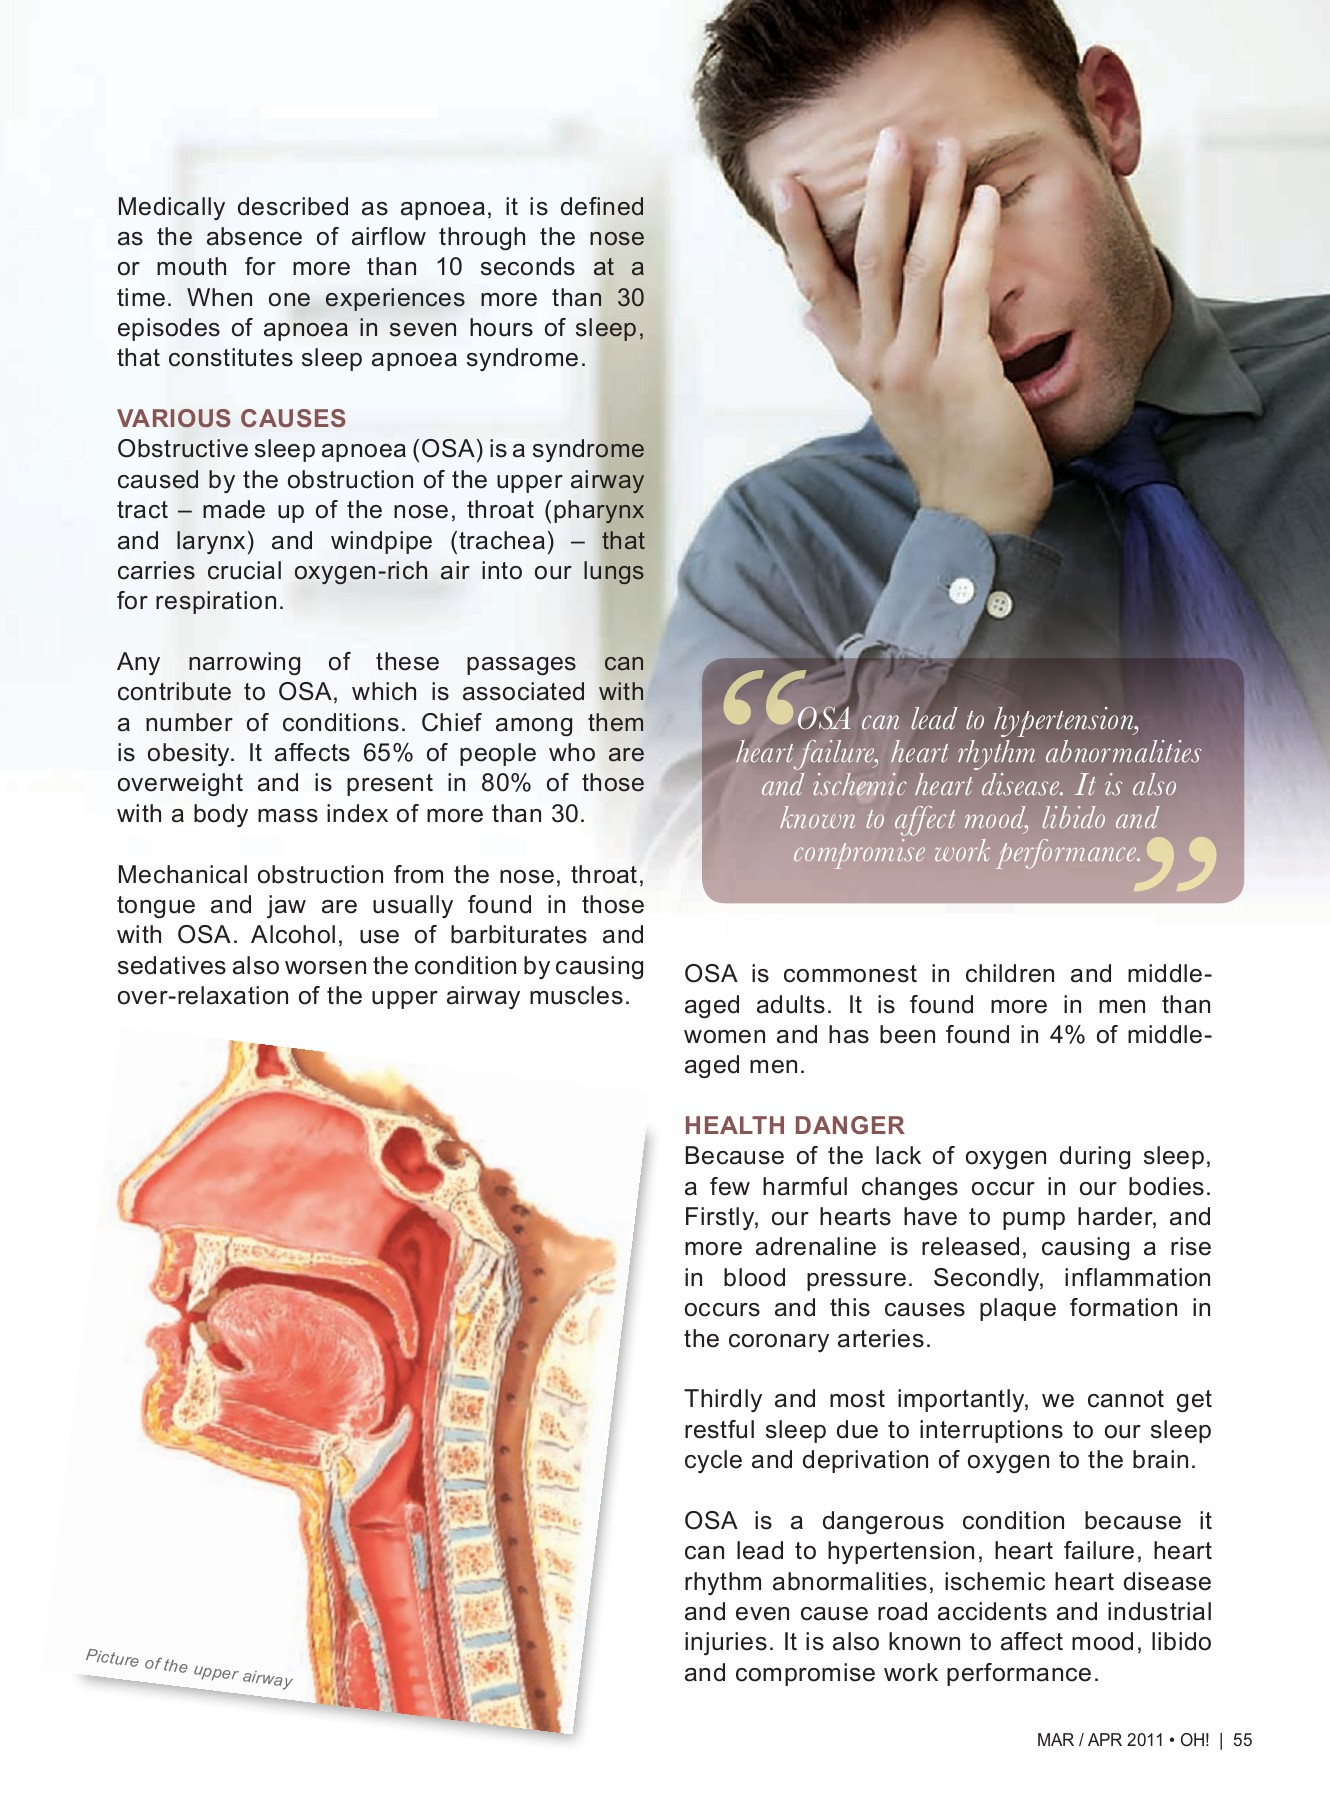 sleep apnoea Obstructive - MSO-HNS Pages 1 - 5 - Text